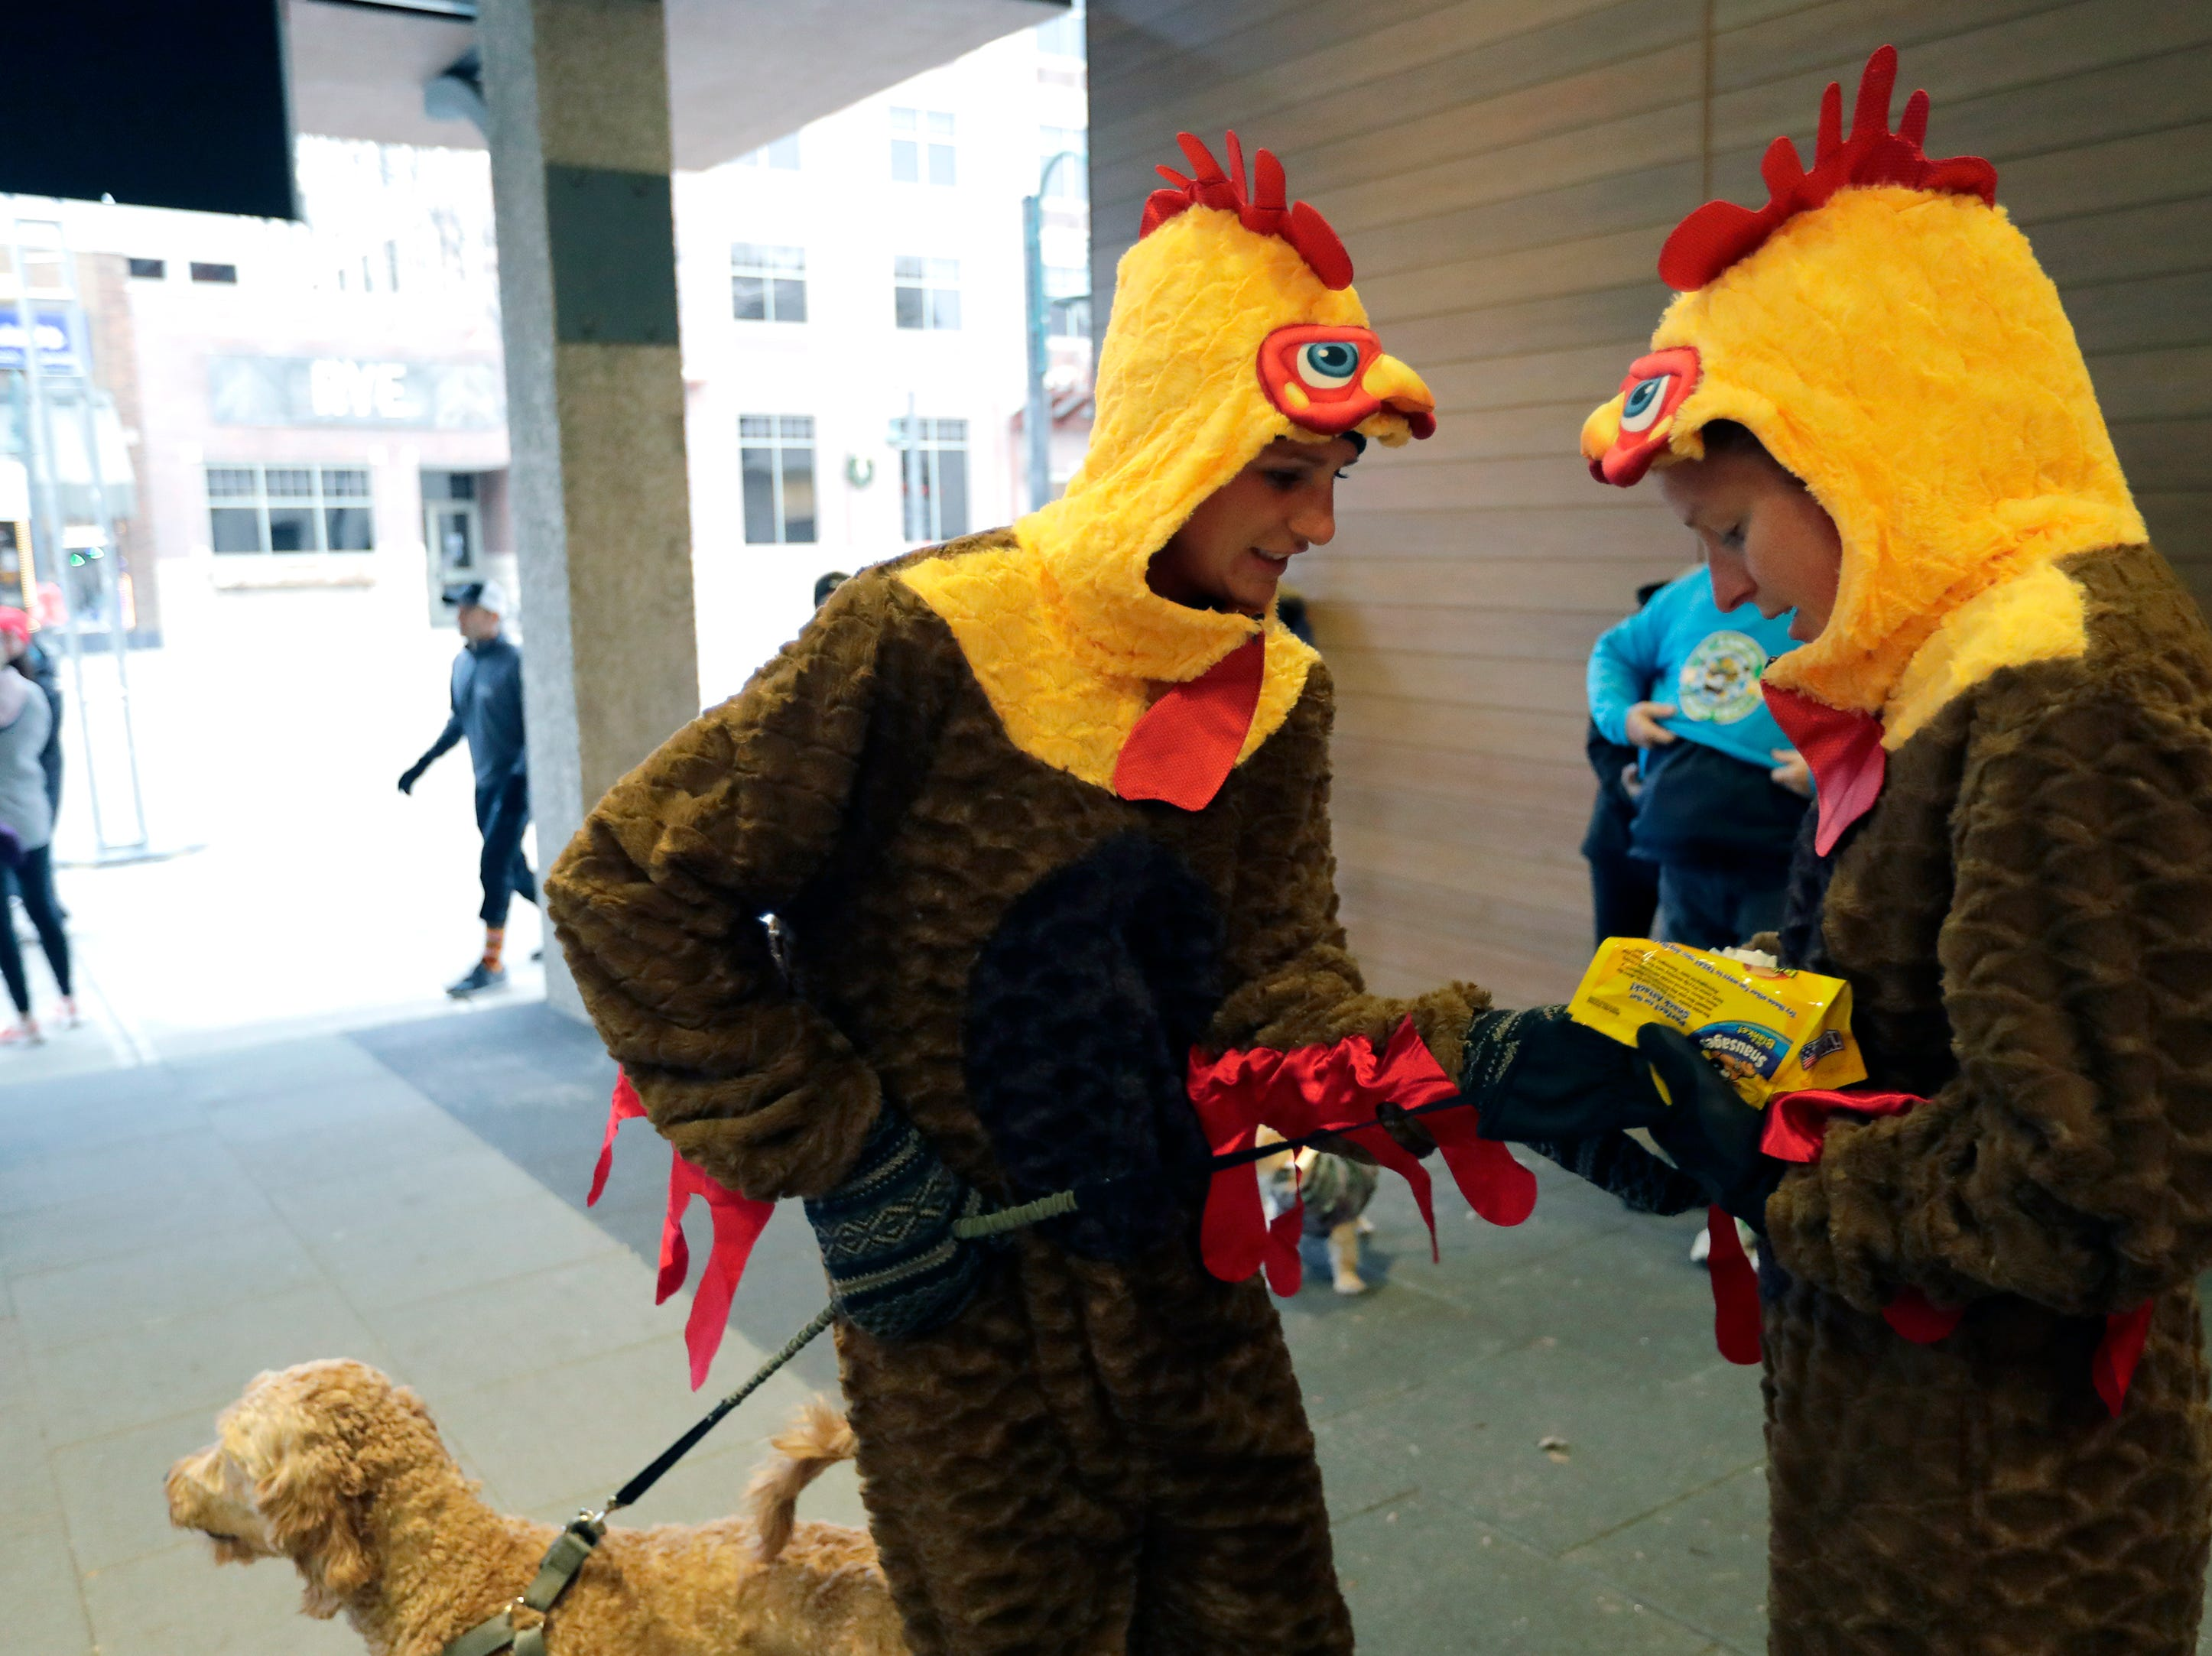 Ashley Schulke , left, of Hortonville and her sister Andrea Flease of Winneconne don turkey outfits during the 11th Annual Festival Foods Turkey Trot Thursday, November 22, 2018, in Appleton, Wis. 